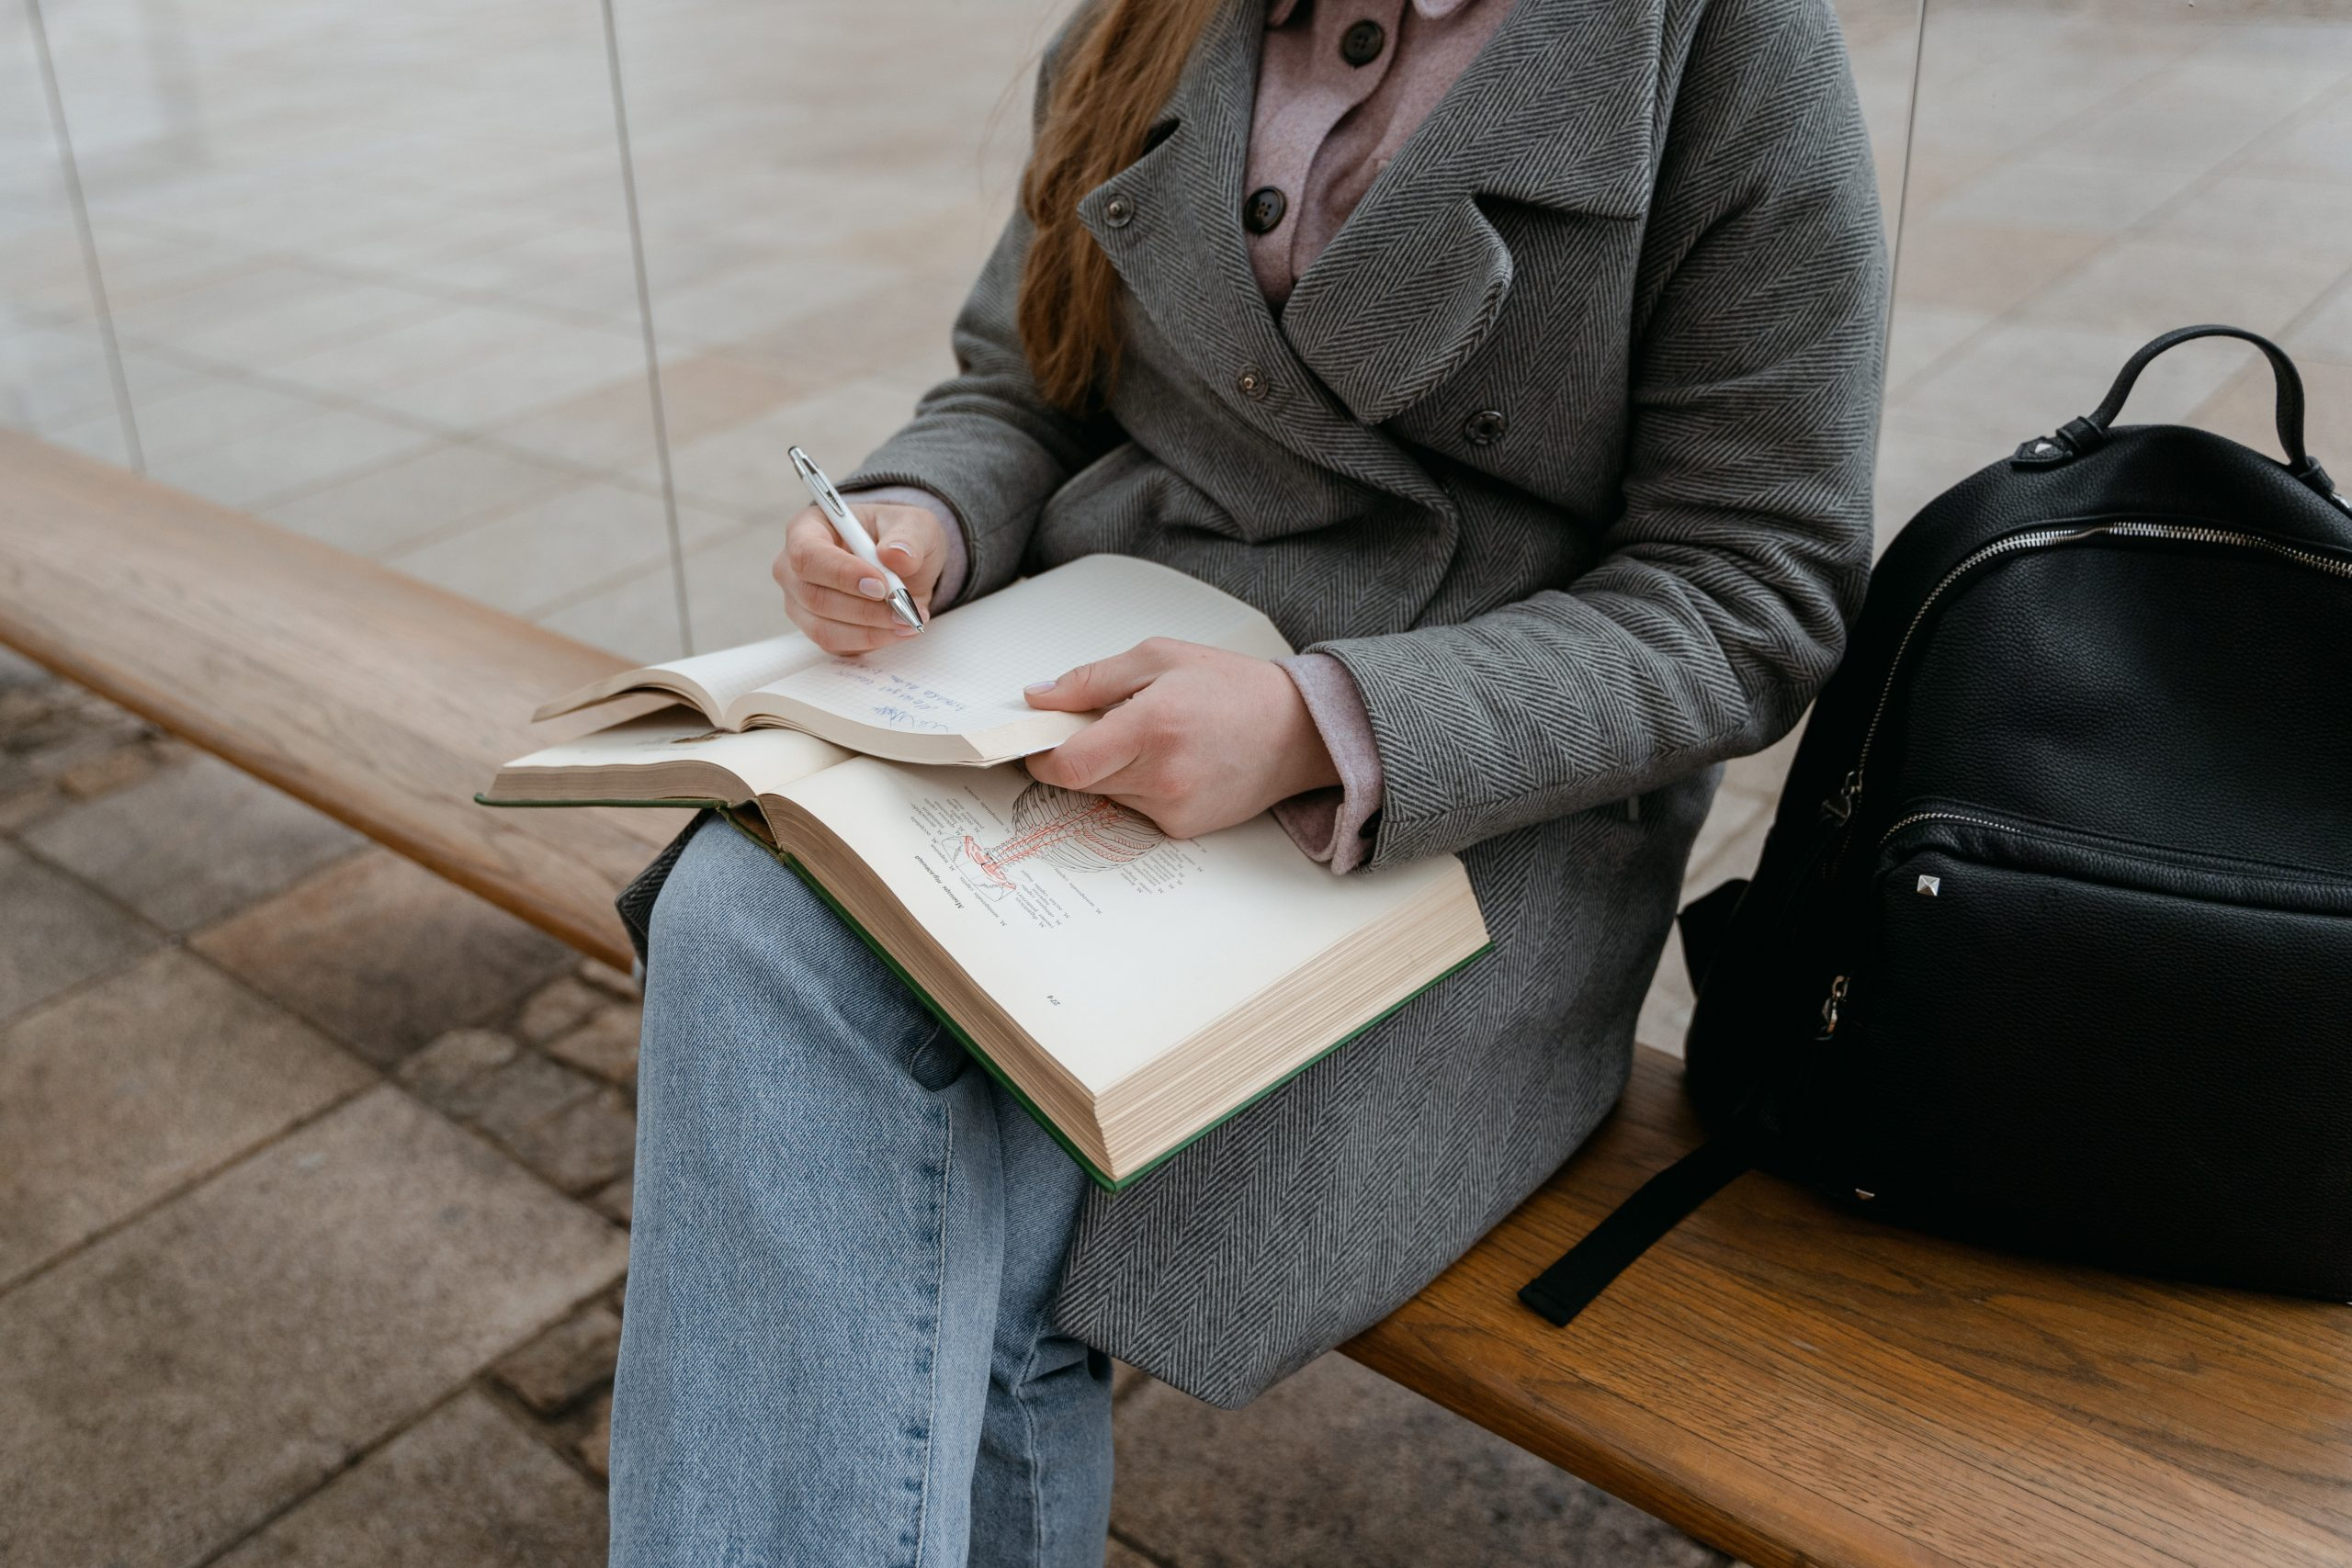 College student sitting on a bench reflecting on a reading assignment